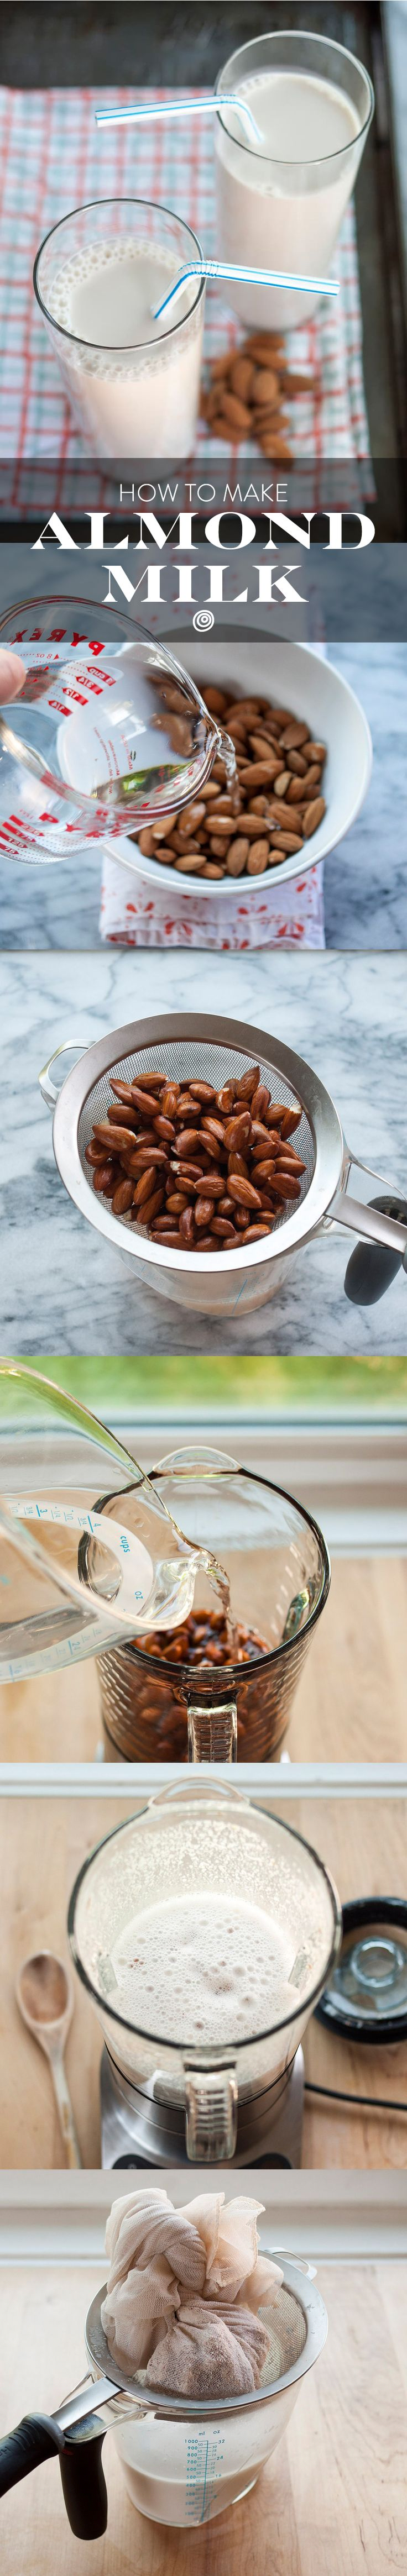 How to make homemade almond milk. Follow our step-by-step recipe and make your own DIY milk alternative! You'll never believe how EASY it is to make.